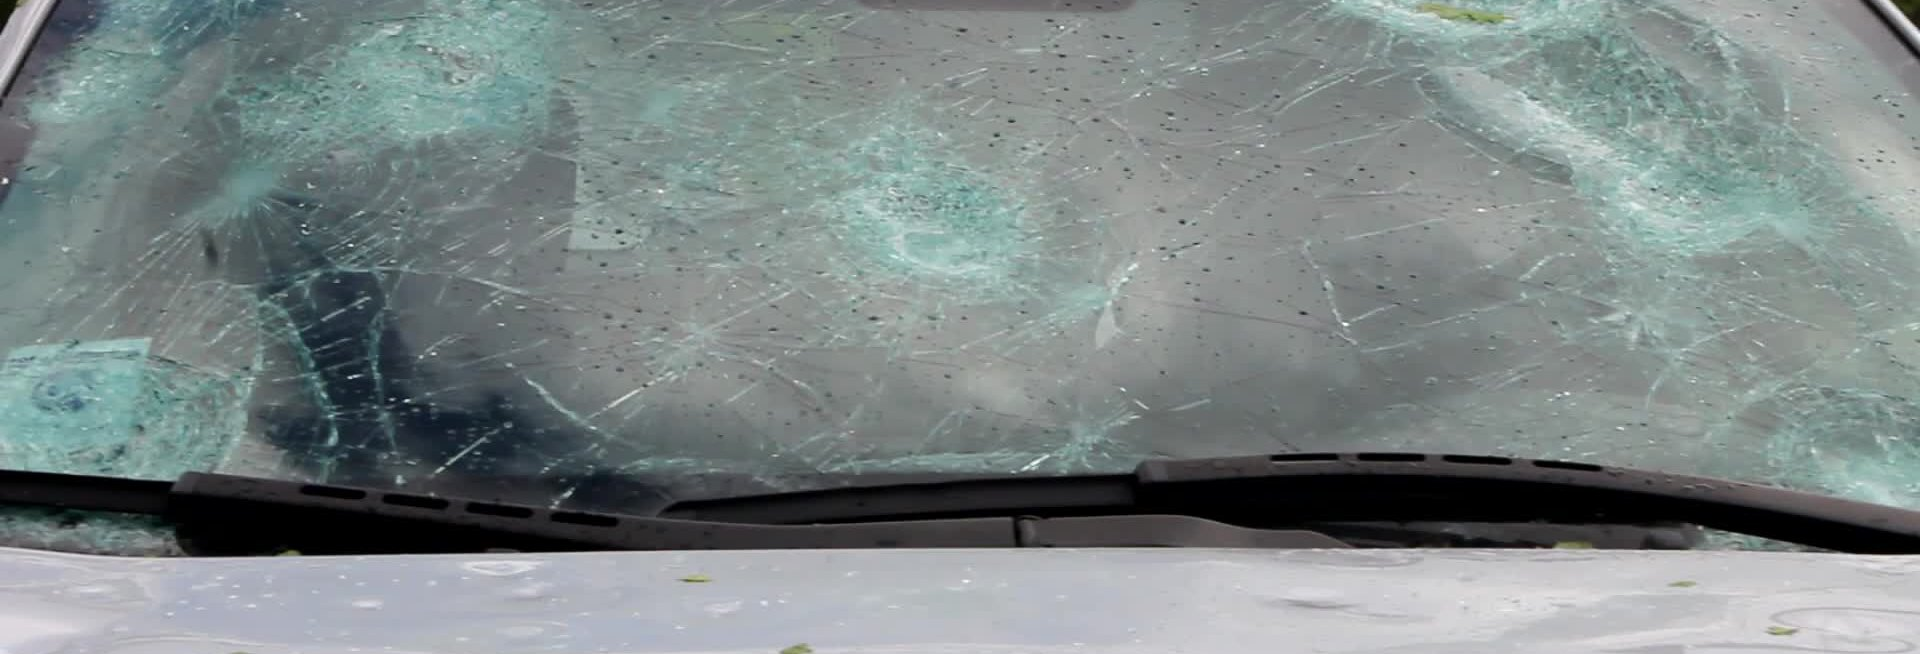 Massive Hailstorm Destroys Cars in Local Parking Lot